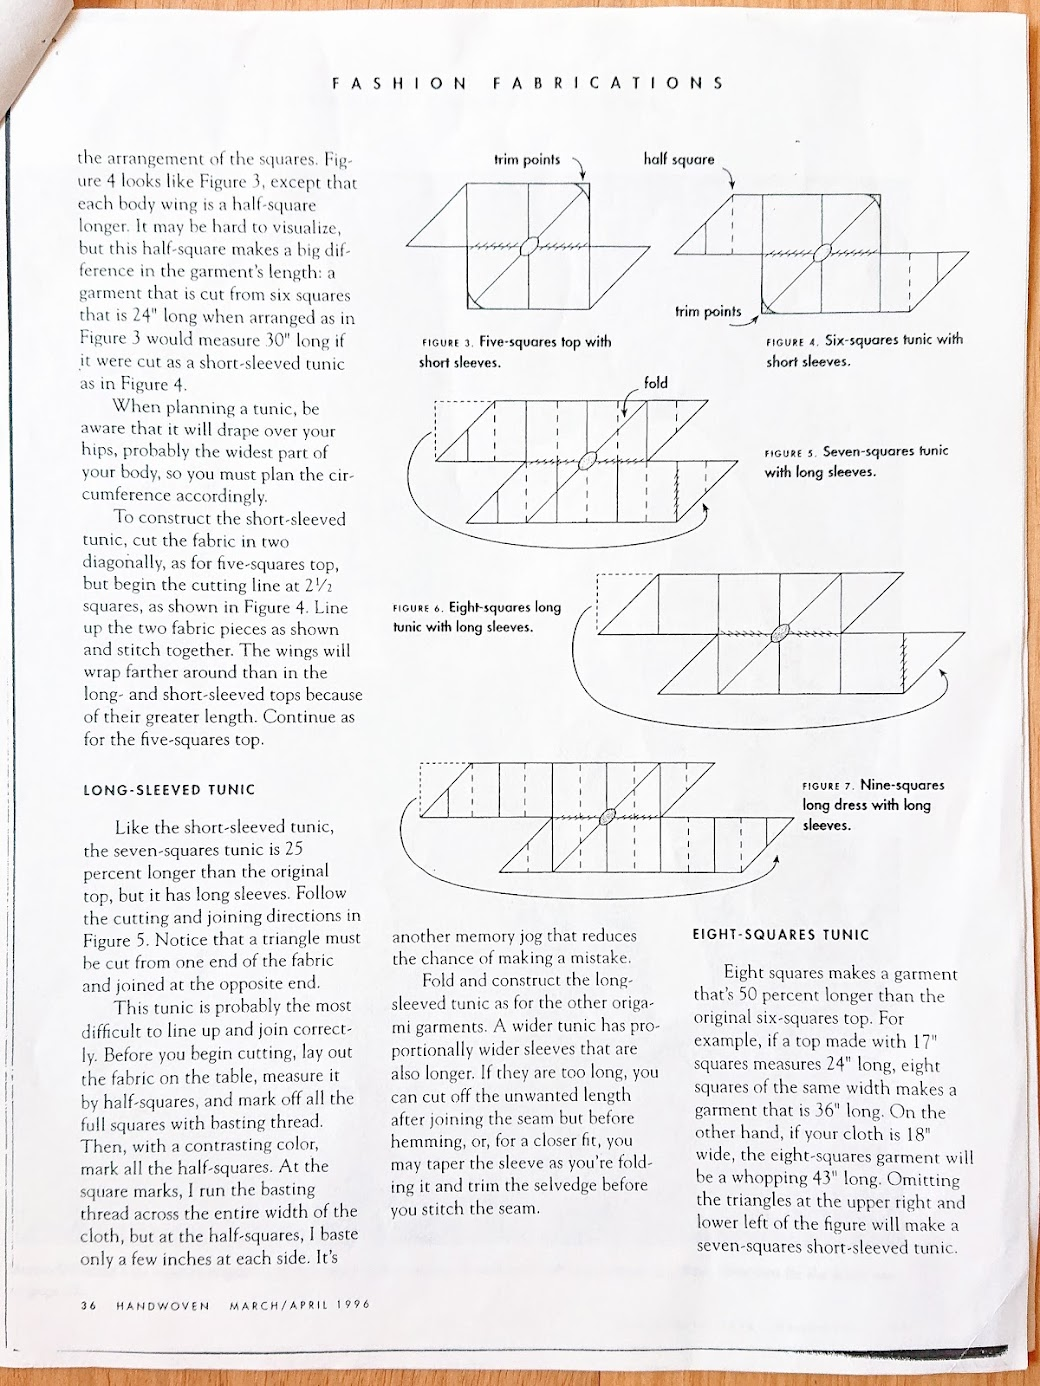 Origami Update article - Handwoven March/April 1996 | FAFAFOOM STUDIO